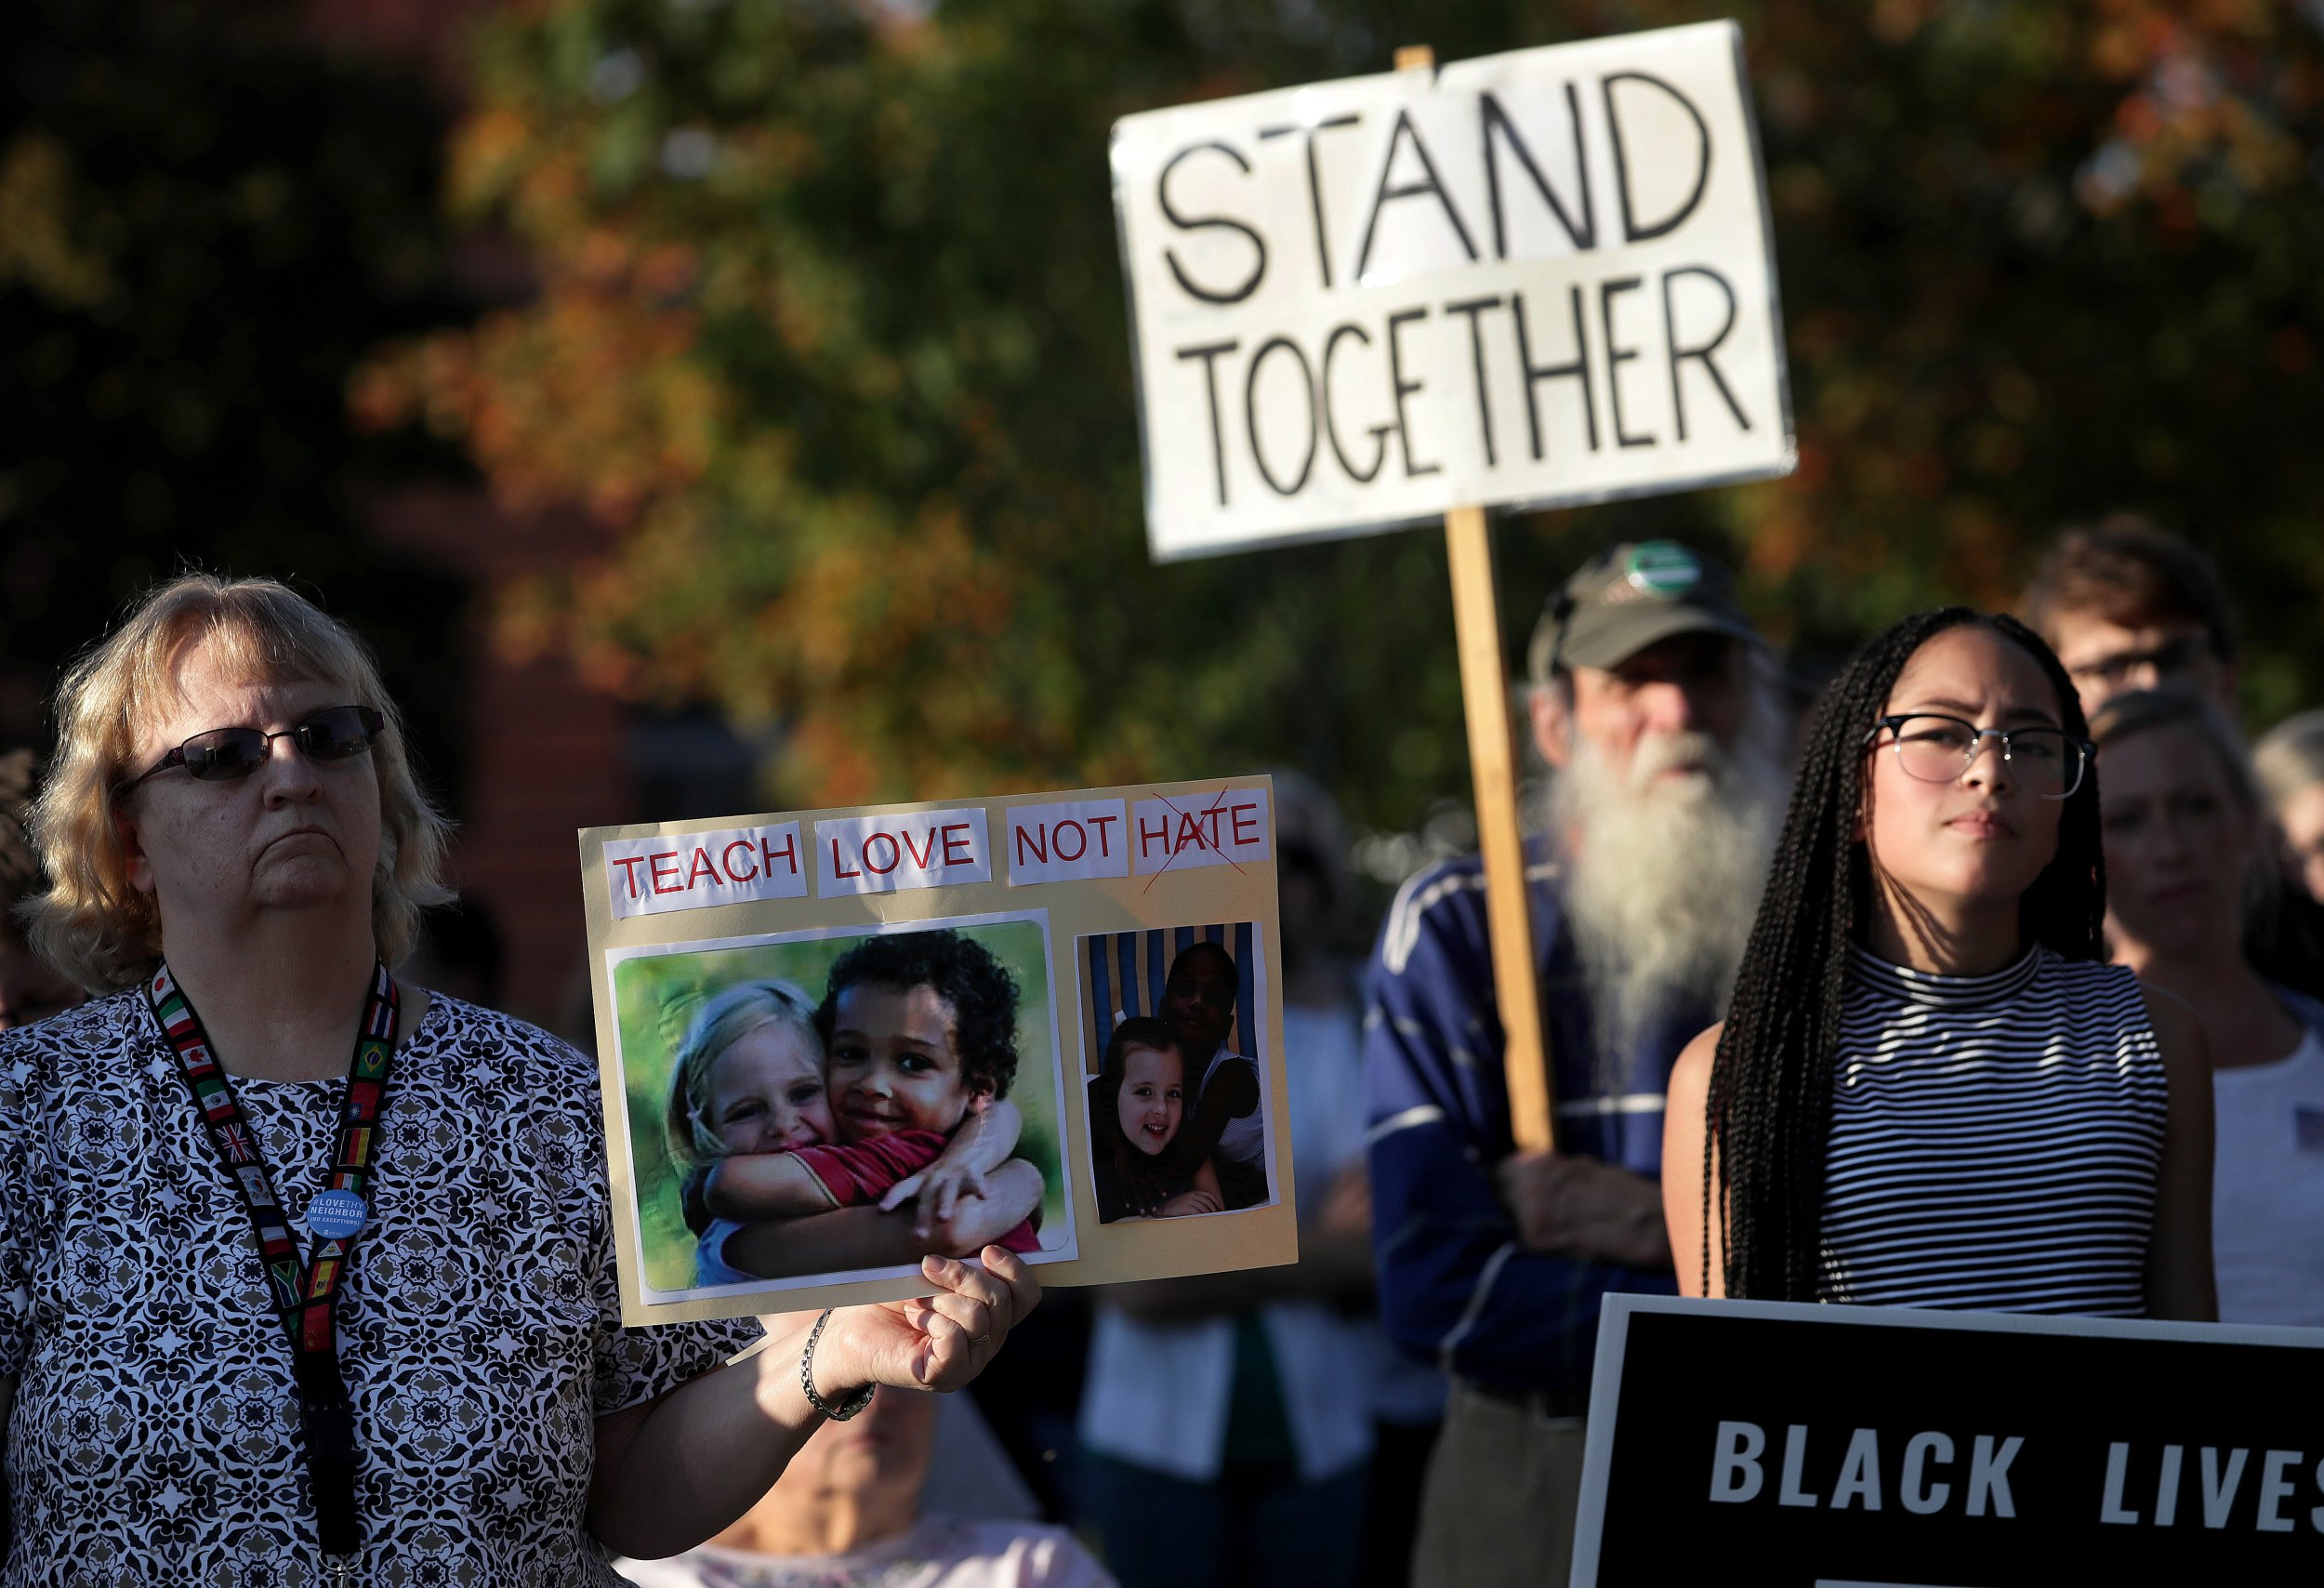 Exclusive: The parents of a teen accused of hanging a biracial boy in N.H. say it was an accident, not a lynching